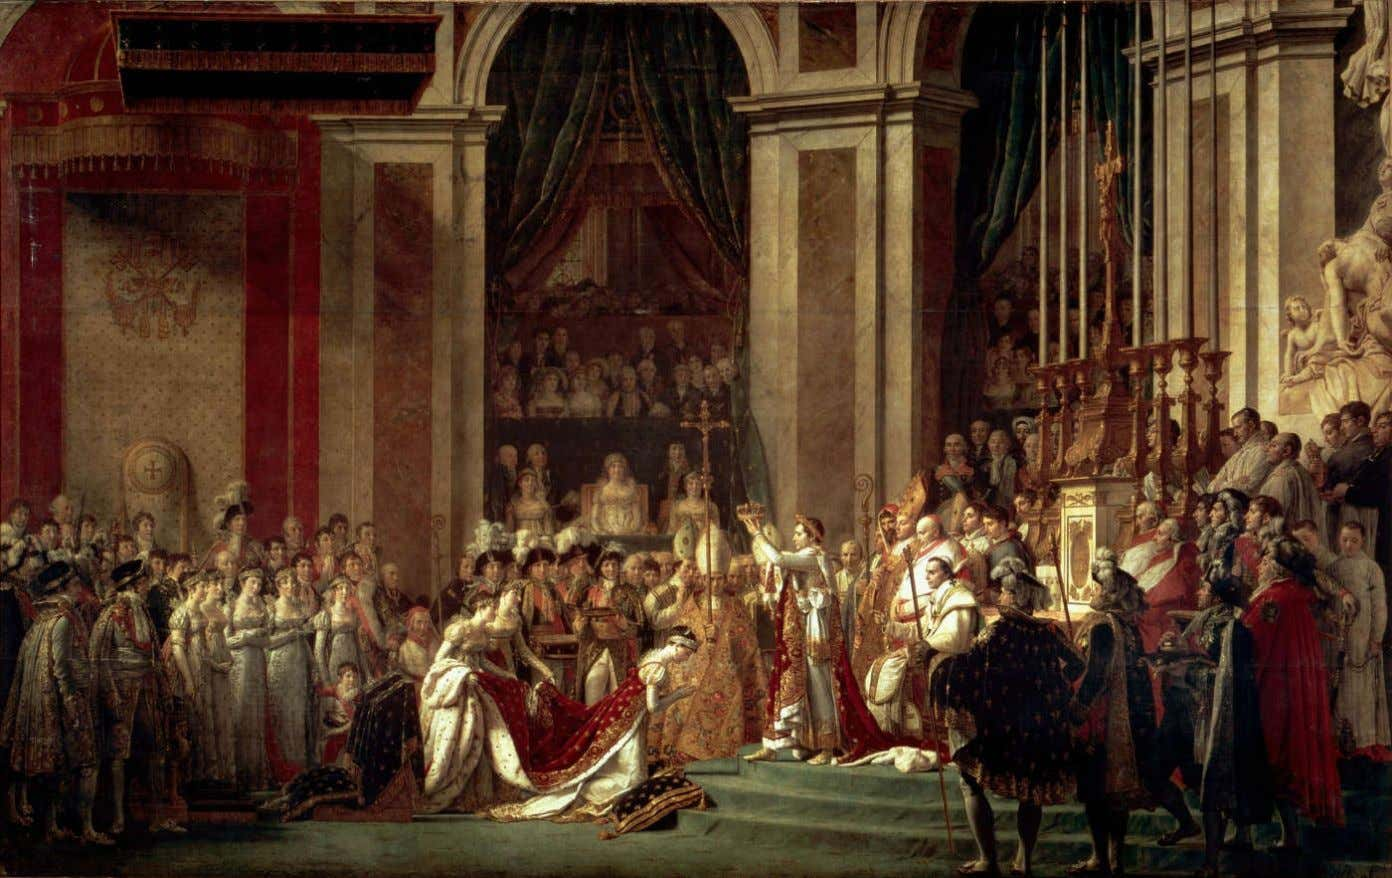 Jacques-Louis David – Le Sacre de Napoléon